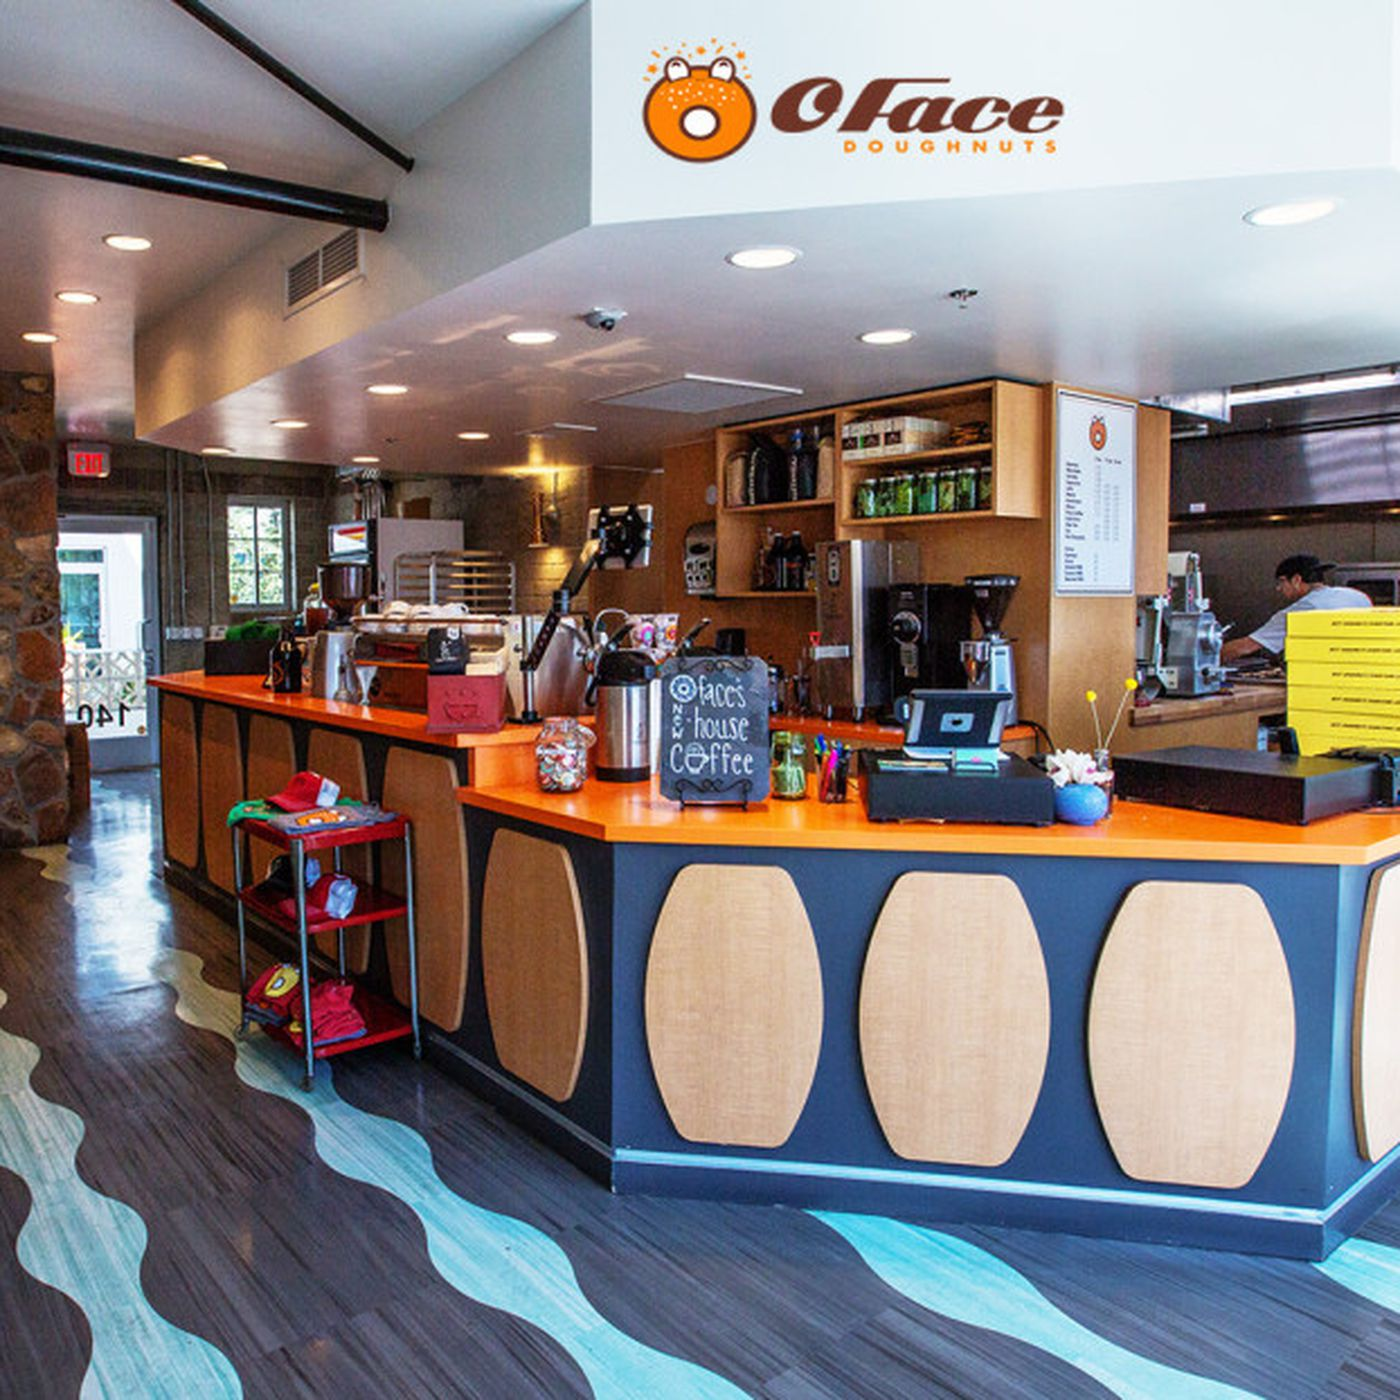 O Face Doughnuts Plans To Close by the End of the Year - Eater Vegas